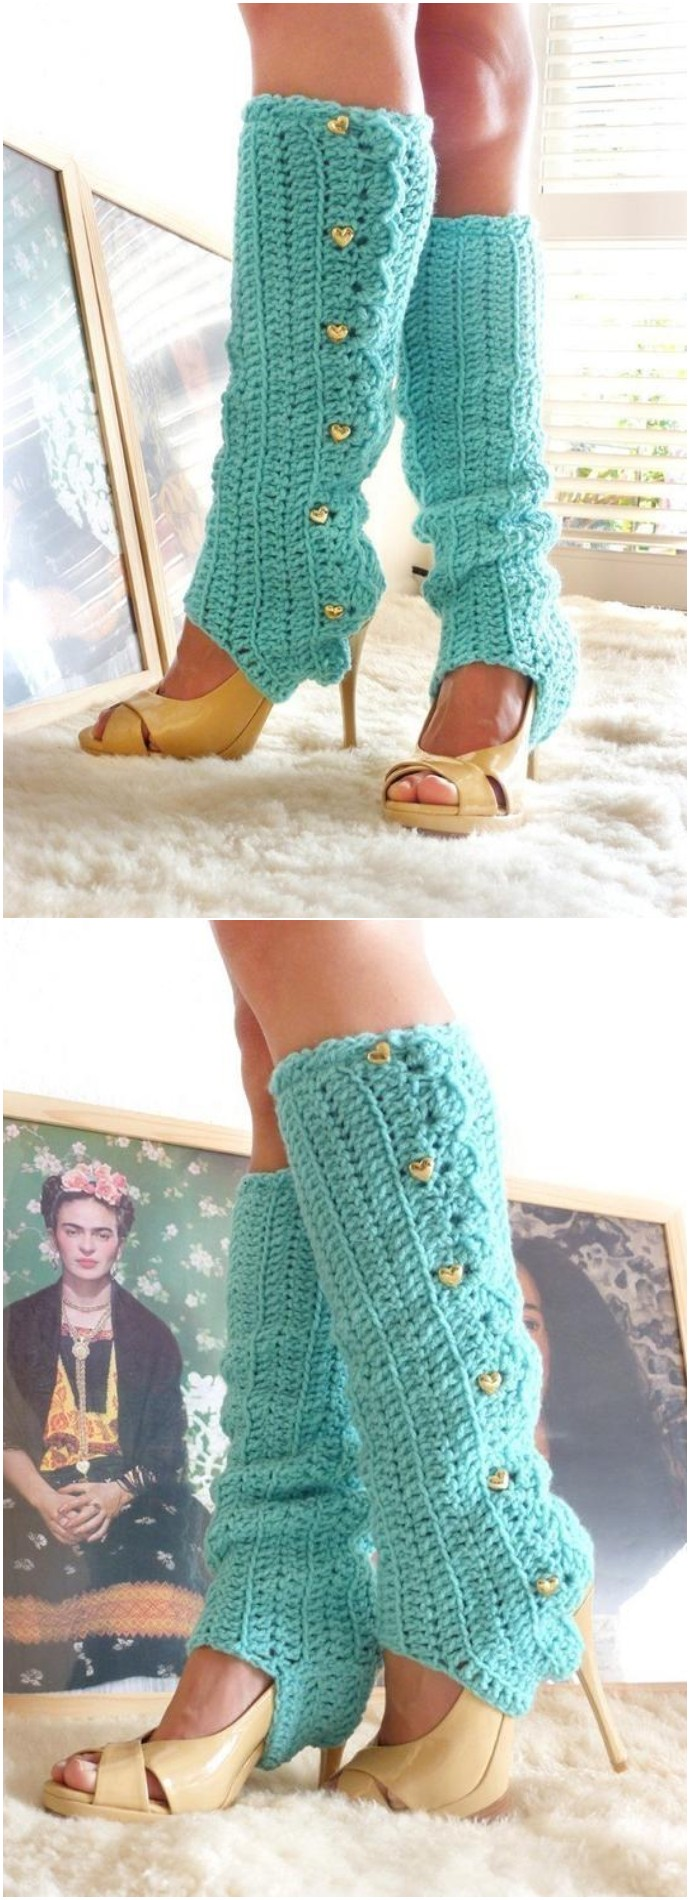 Adorable Crochet Leg Warmers With Stirrups